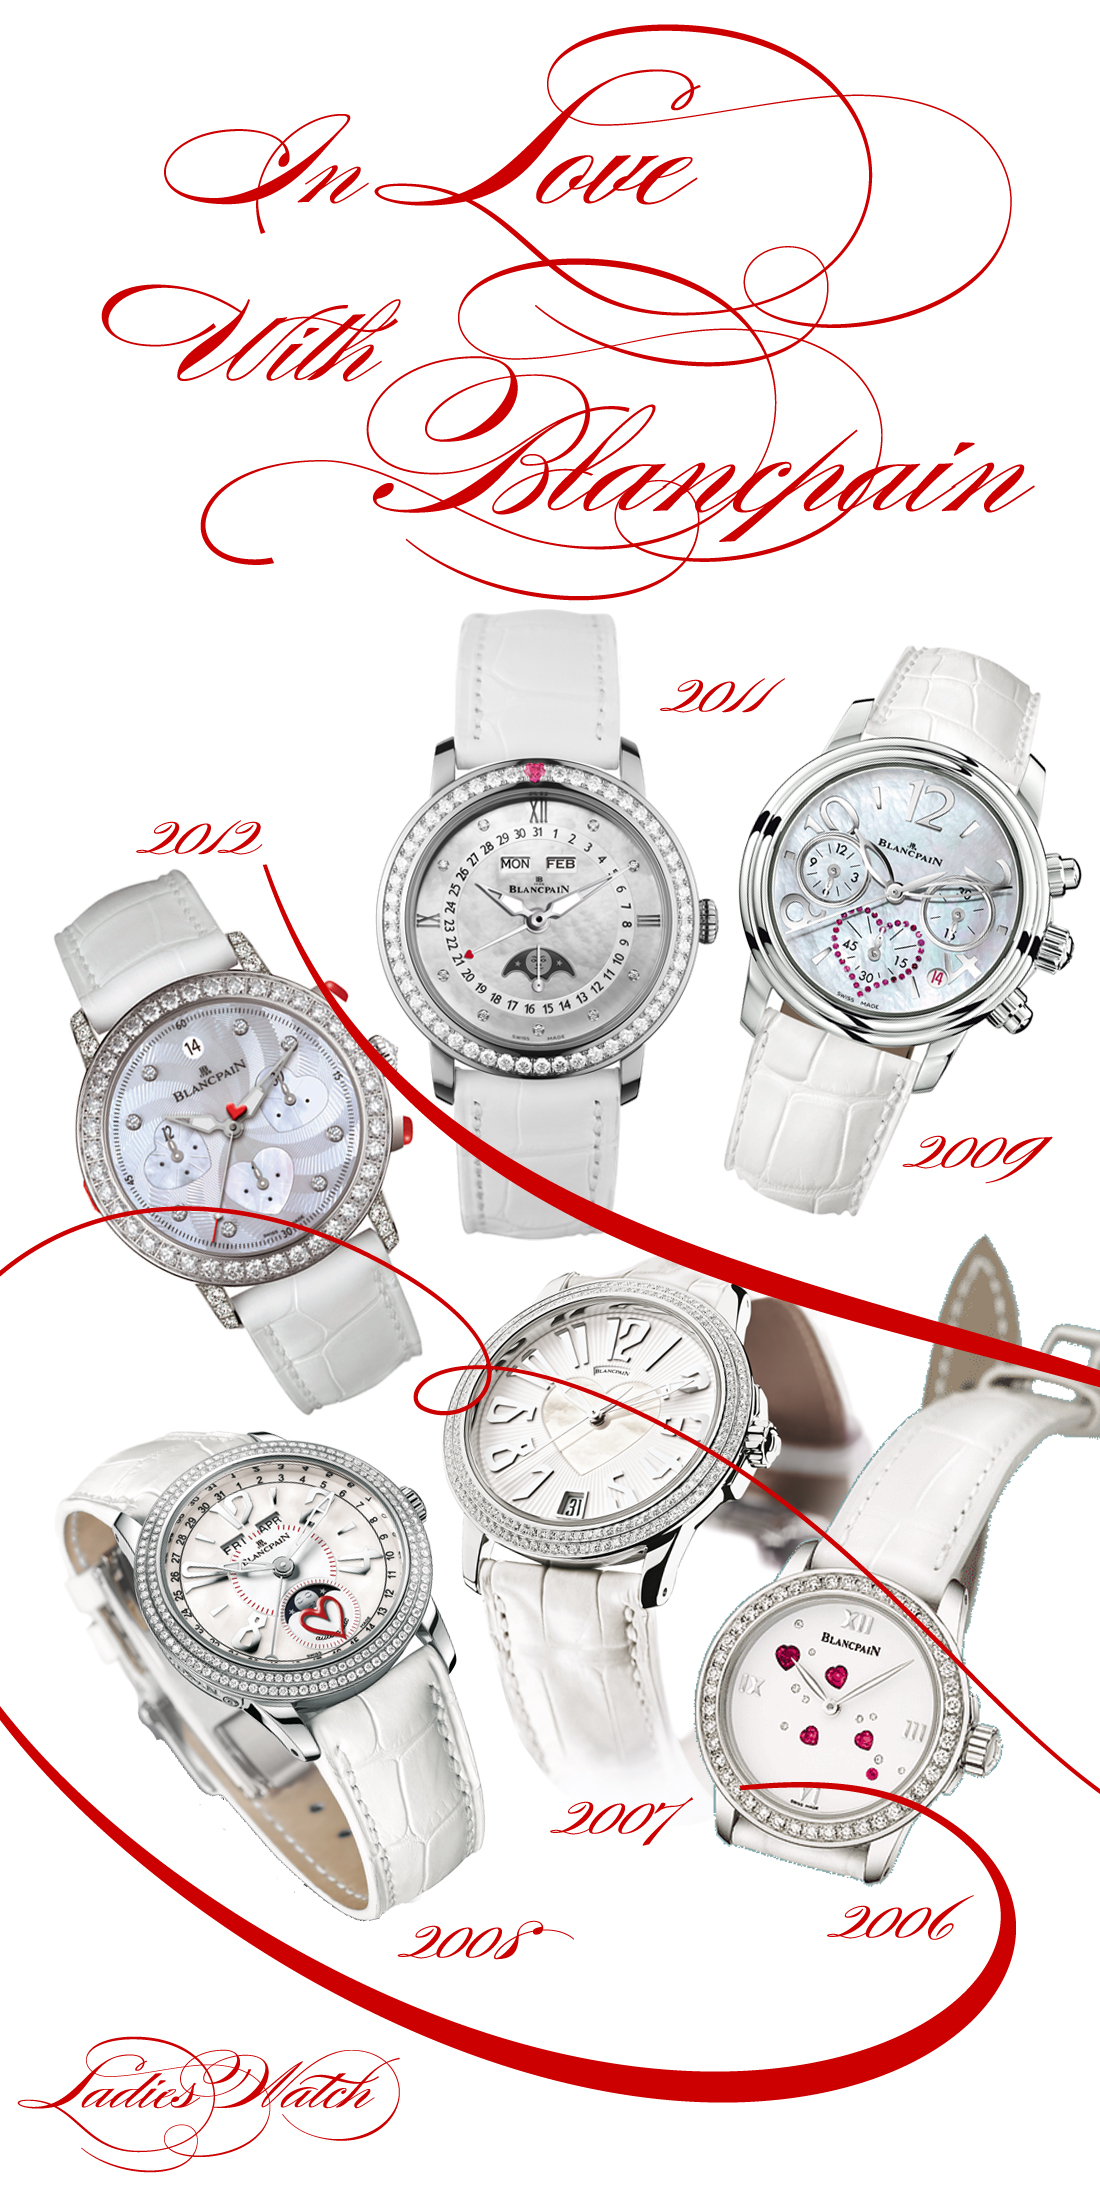 Saint-Valentin | In Love With Blancpain